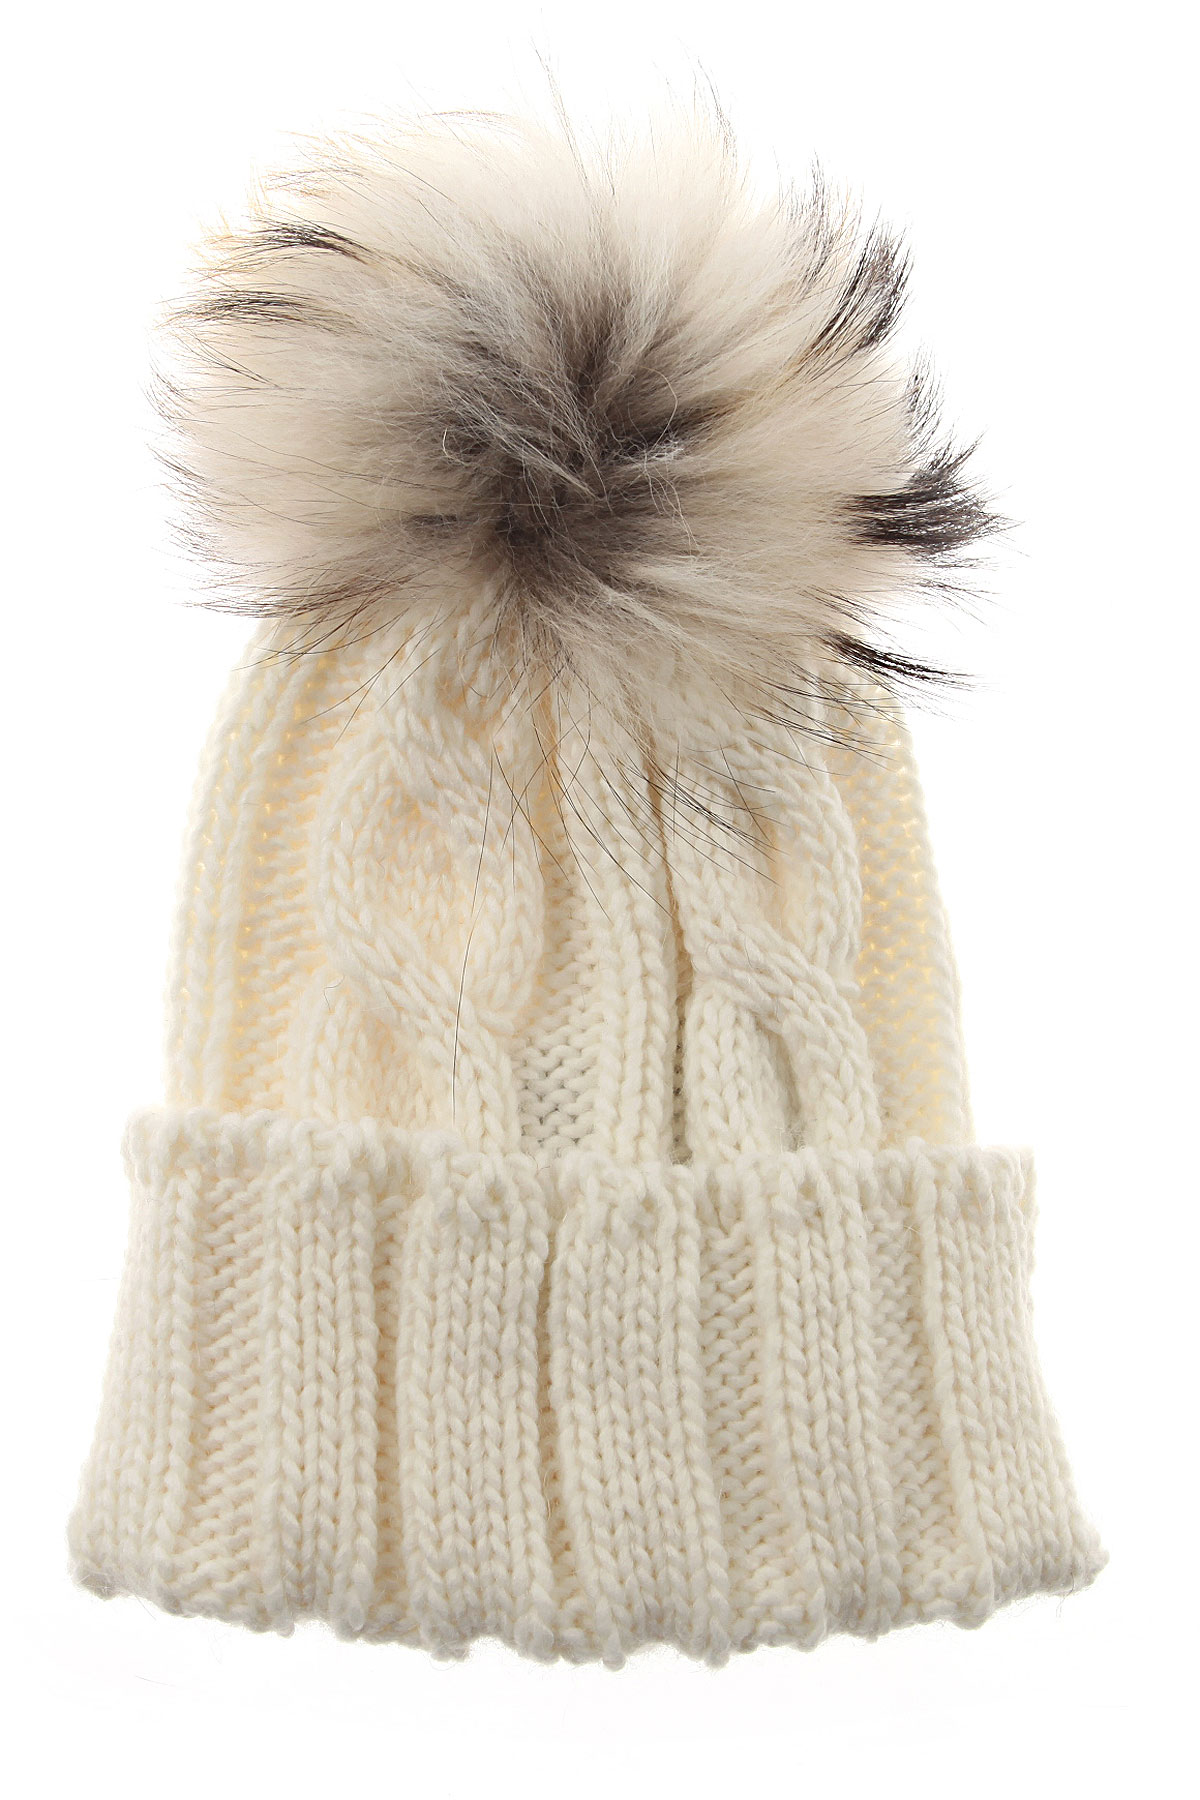 Image of Canadian Classic Kids Hats for Boys, White, Acrylic, 2017, S M L